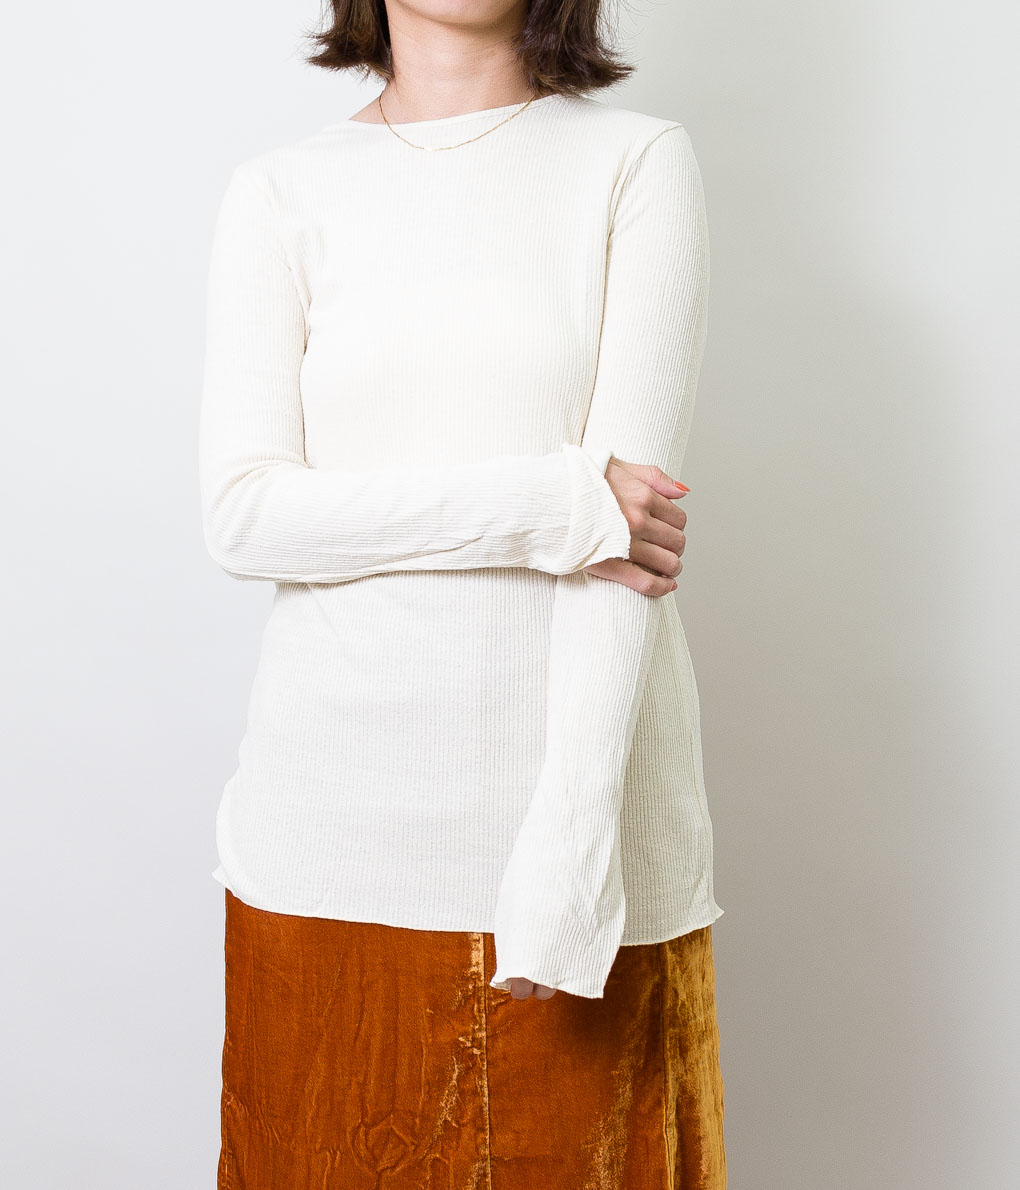 HAKUJI ハクジNOIL SILK SLIT TUNIC SILK TOPS